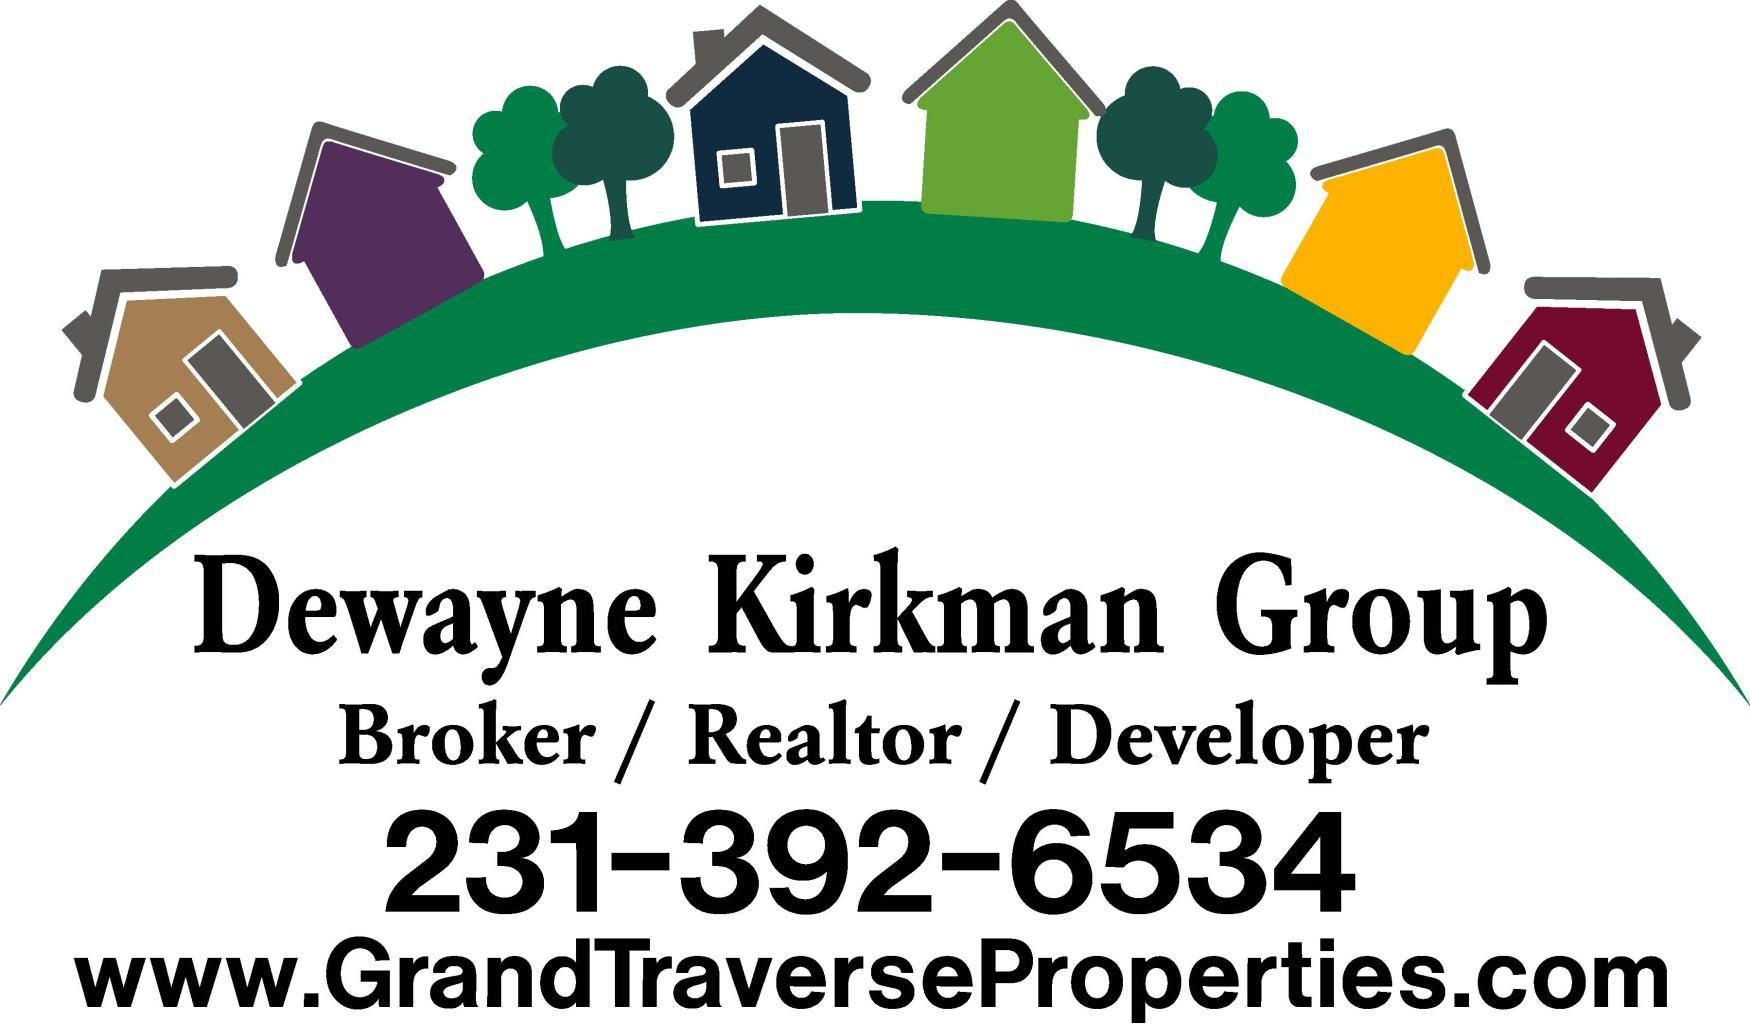 Grand Traverse Properties